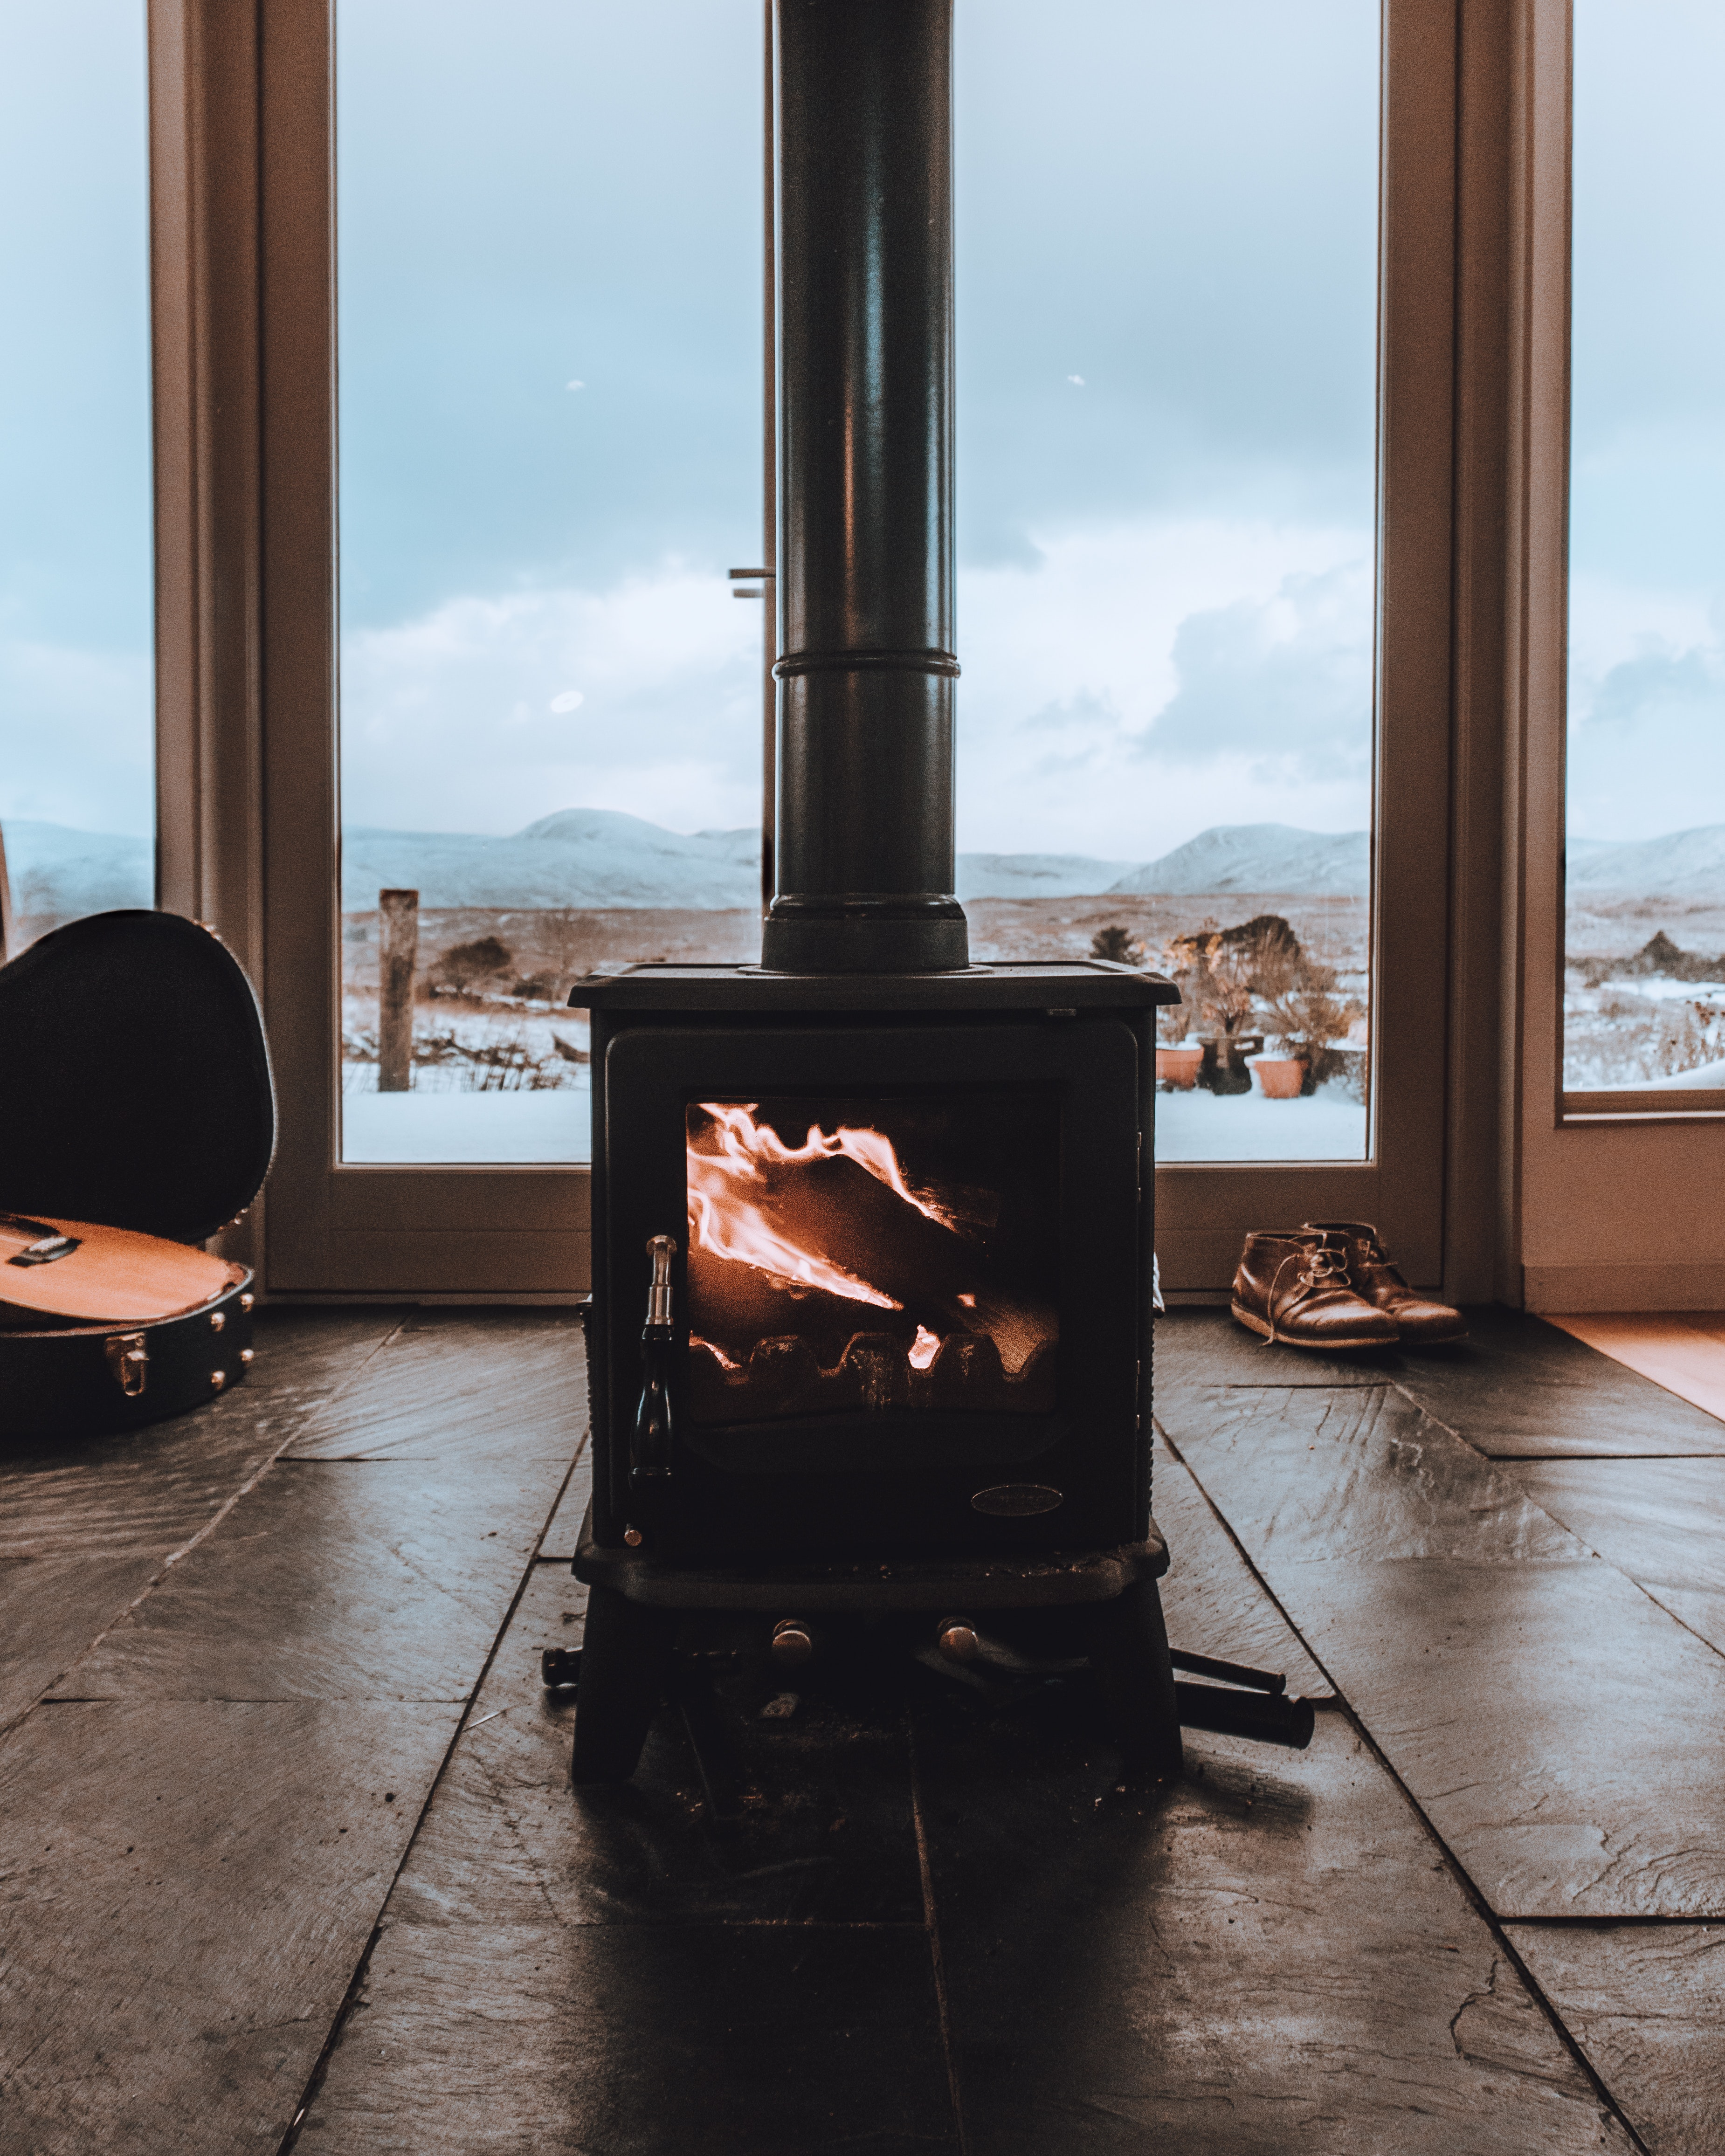 Wood Smoke May Smell Good, but Winter Fires Come With a Steep Health Cost